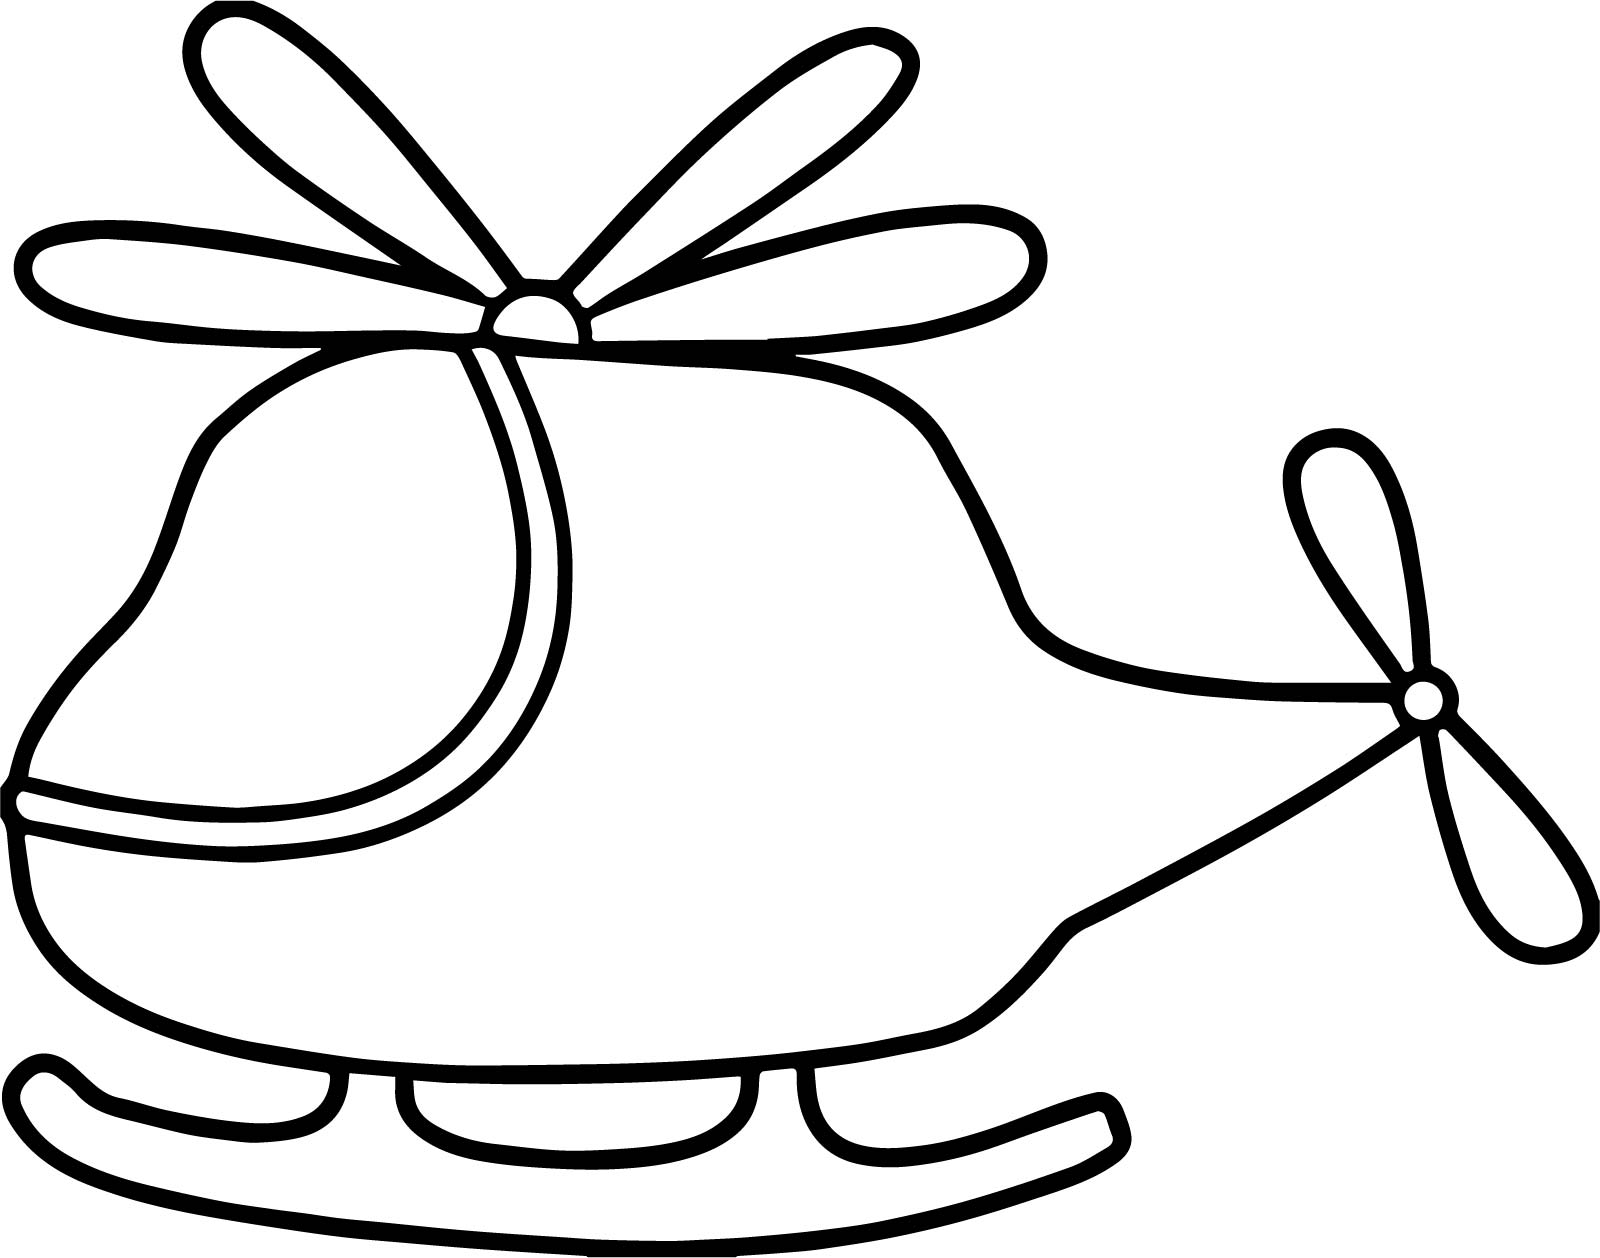 Basic Helicopter Coloring Page